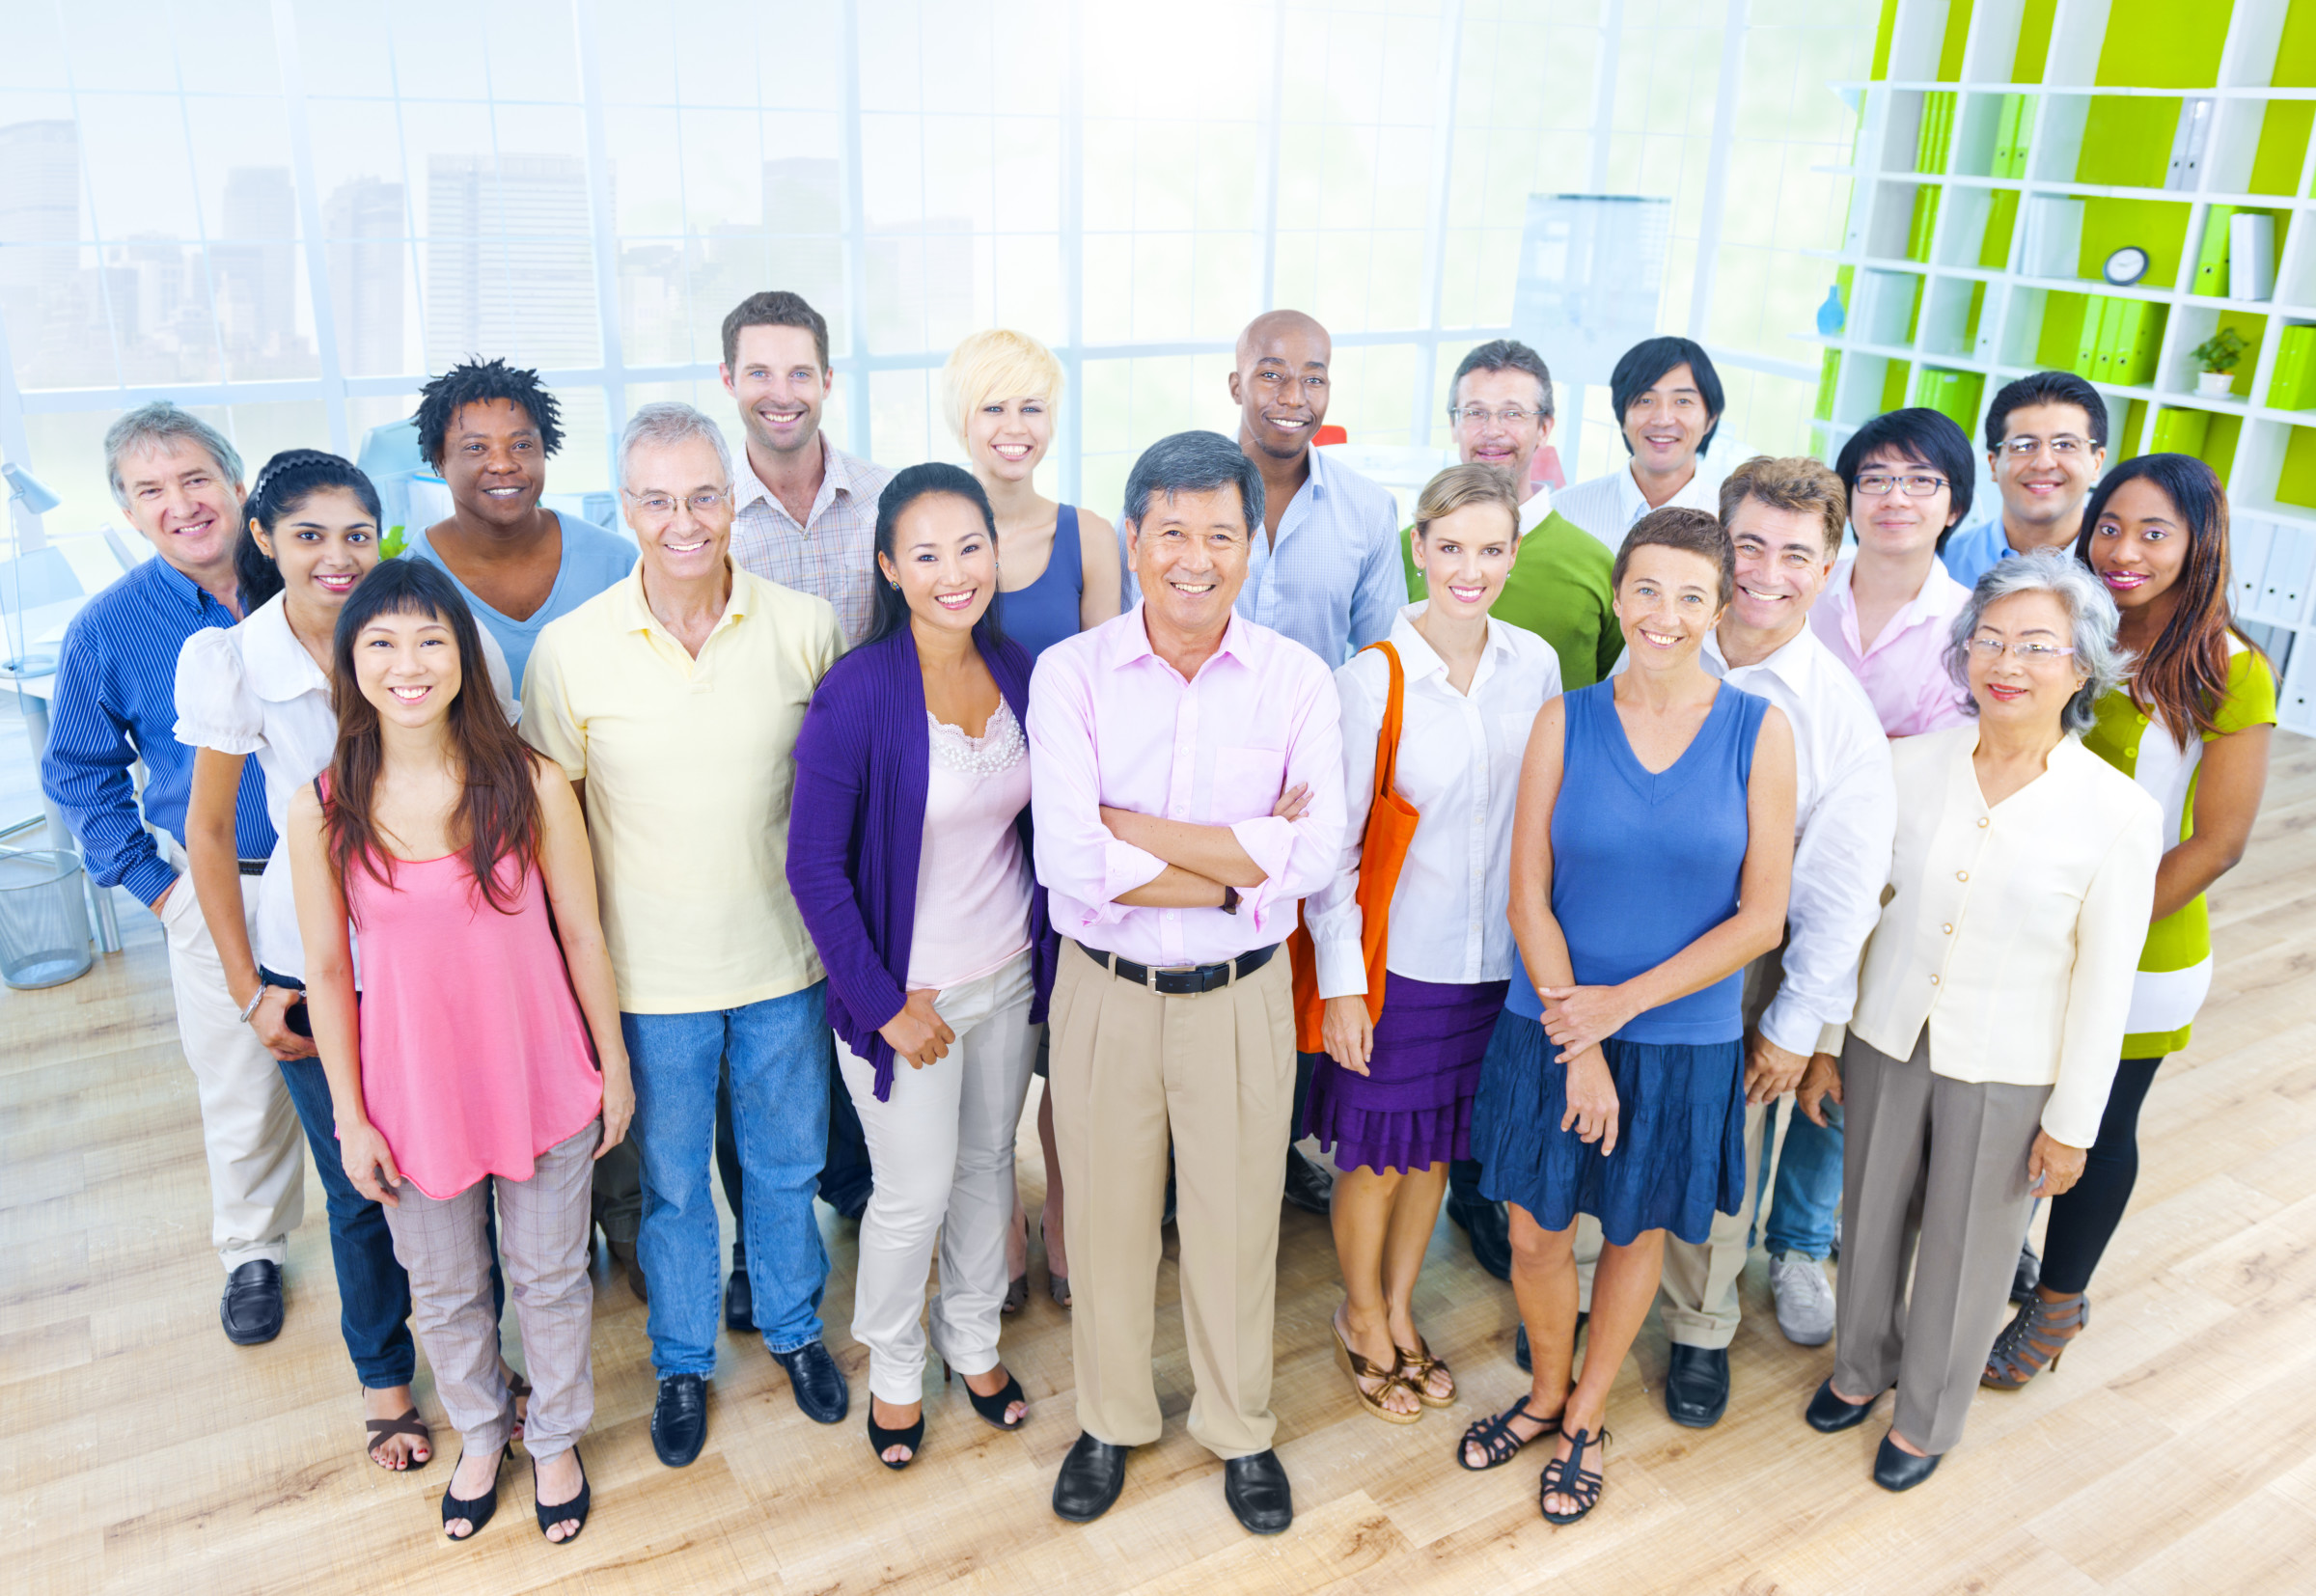 Group of Business People in Casual Office Environment